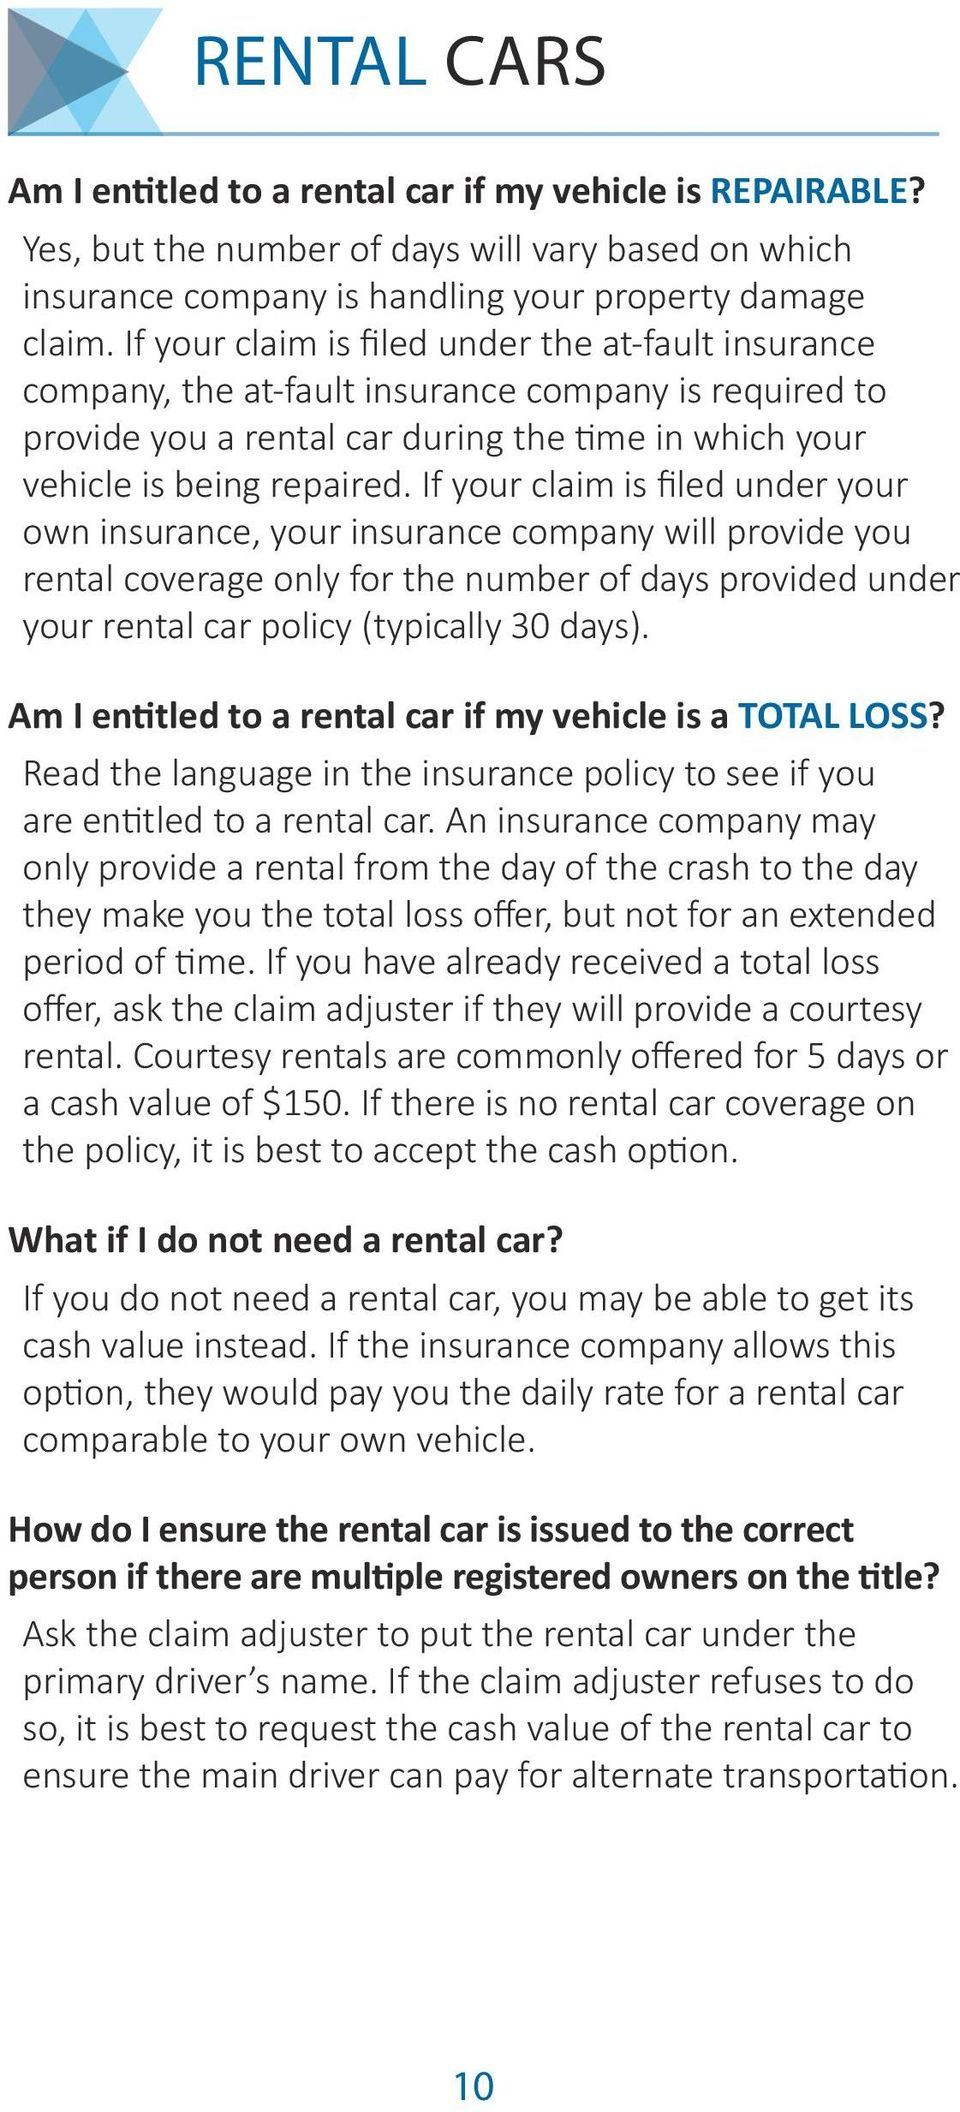 If your claim is filed under your own insurance, your insurance company will provide you rental coverage only for the number of days provided under your rental car policy (typically 30 days).